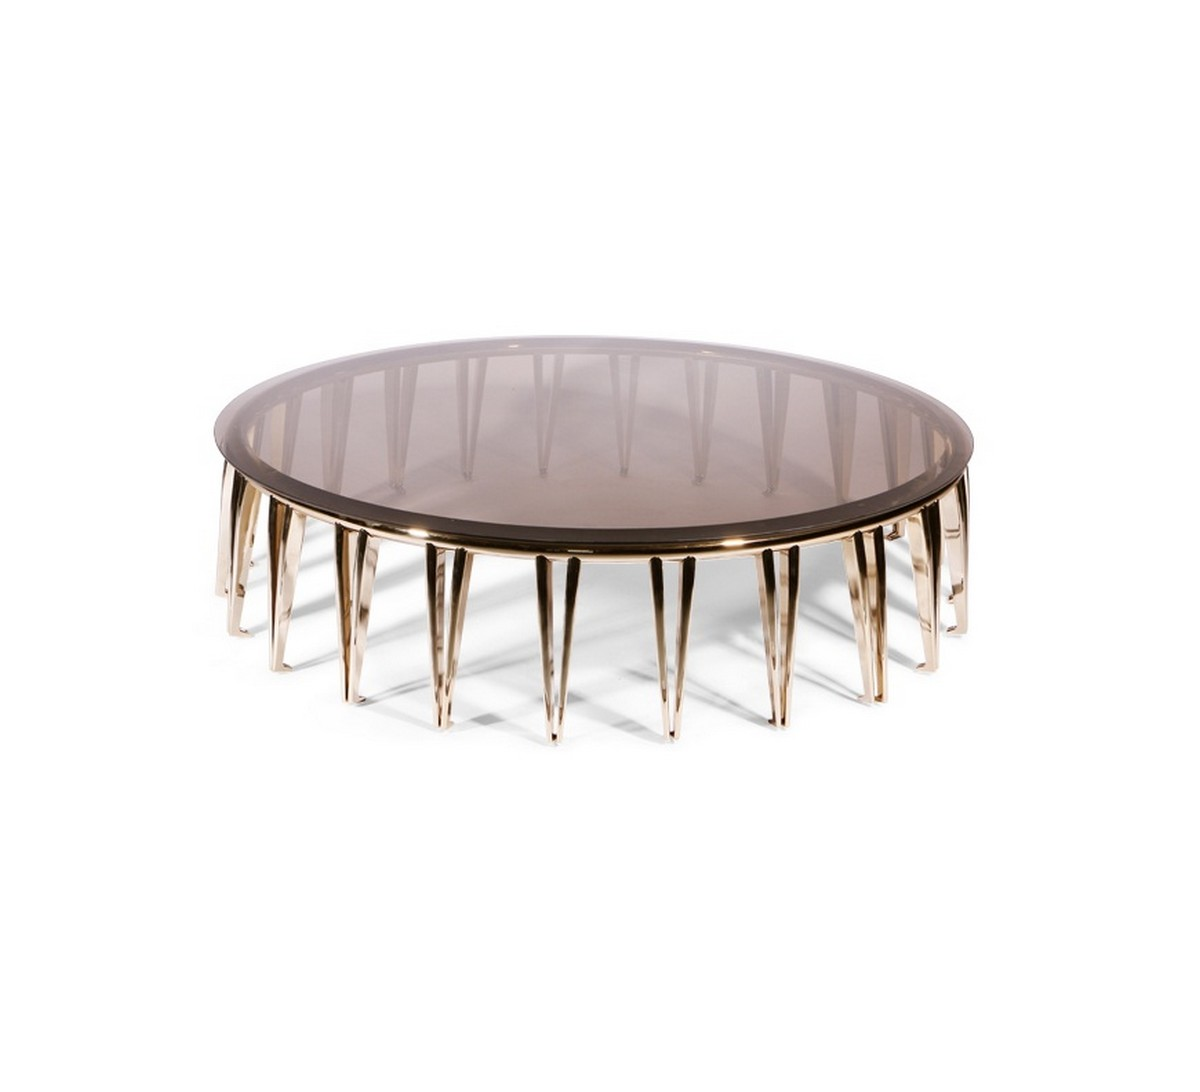 Top Neutral Color Coffee Tables neutral color coffee tables Top Neutral Color Coffee Tables newson2